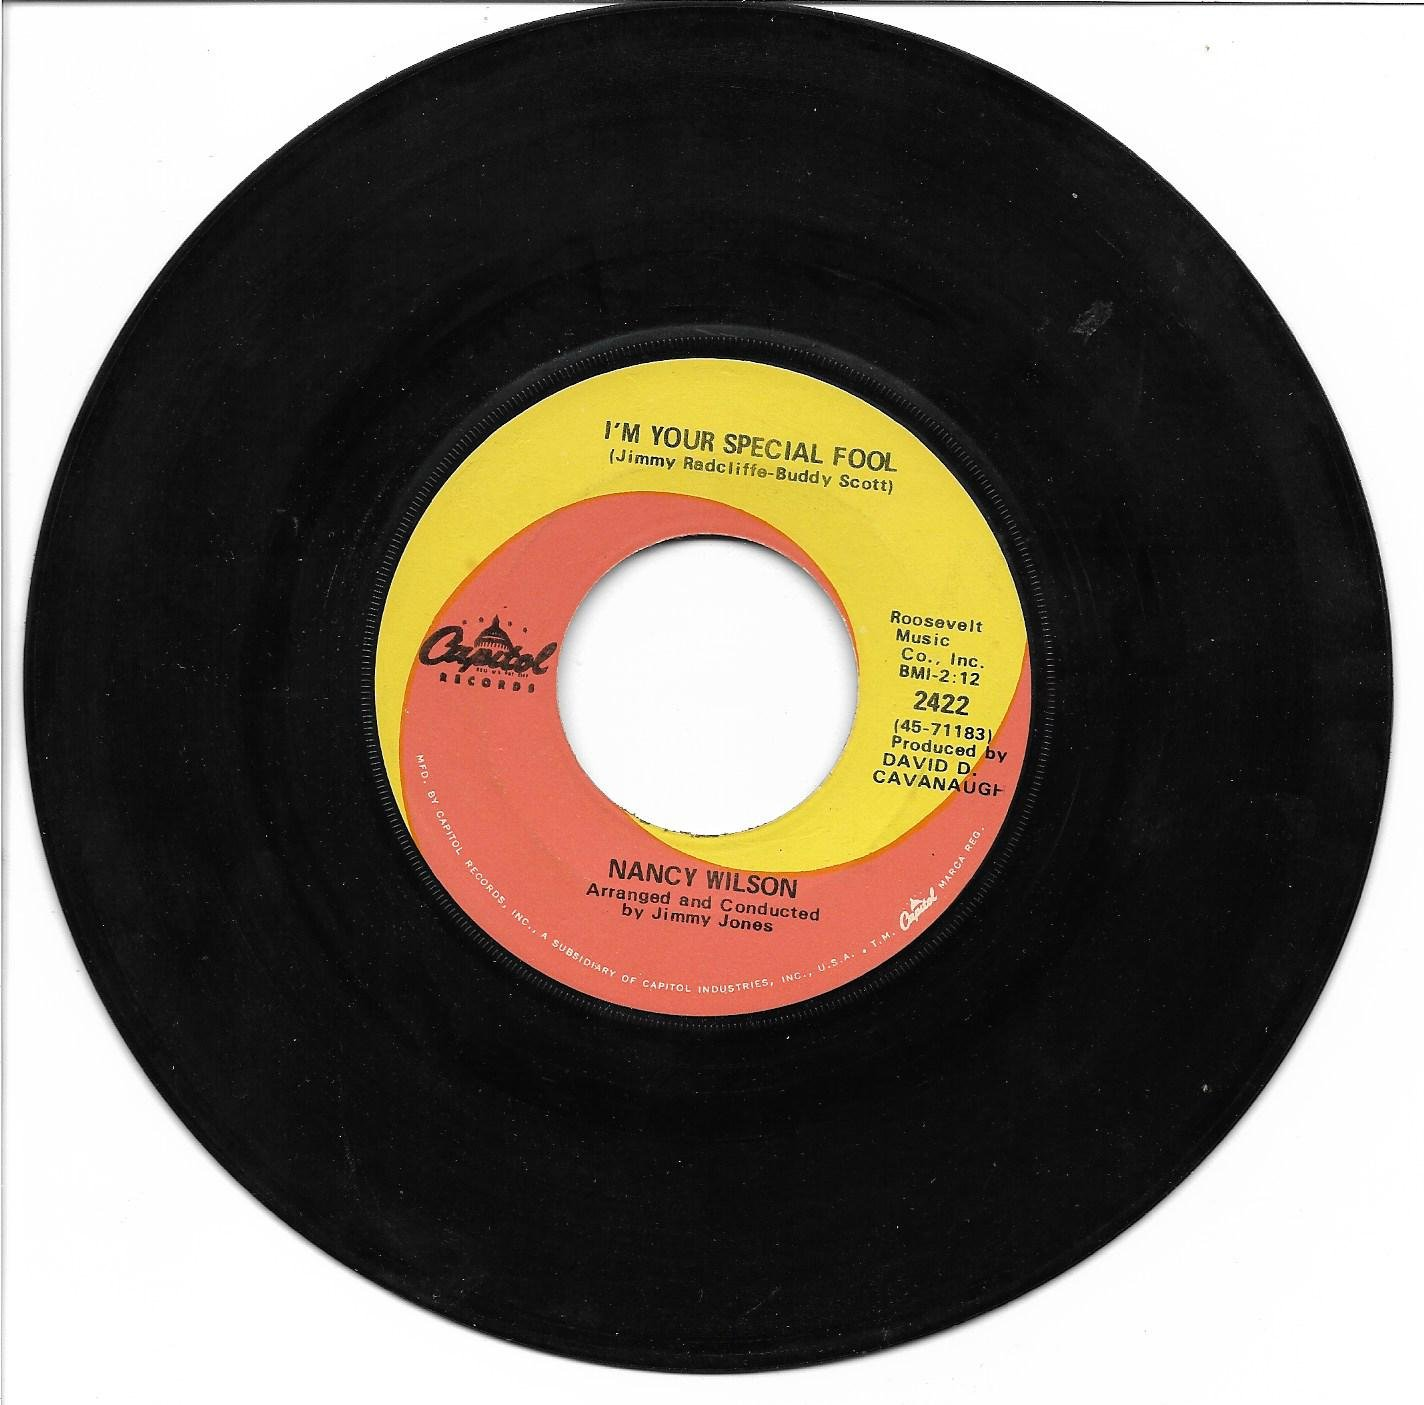 """Nancy Wilson: """"I'm Your Special Fool"""" / """"You'd Better Go"""" - '69 - pl very well!"""